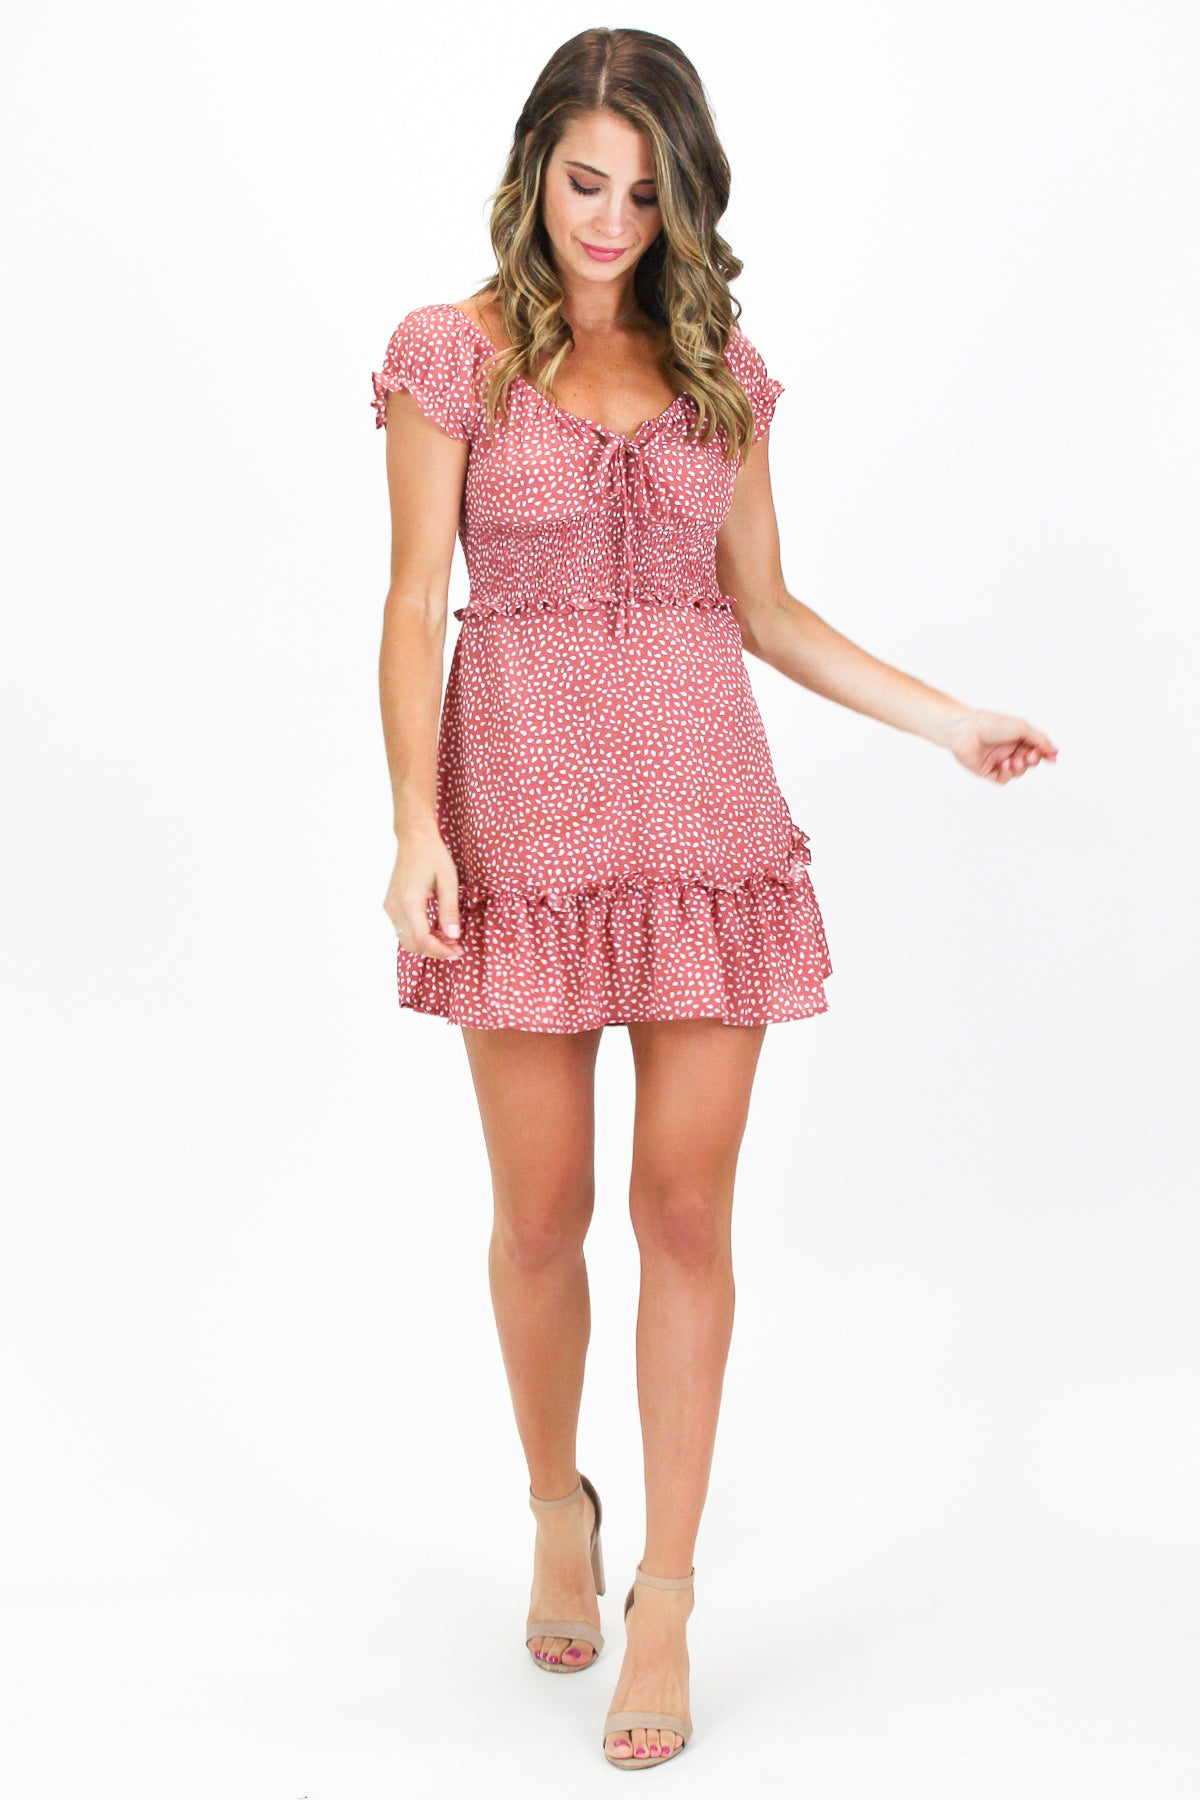 CORAL PATTERNED RUFFLE DRESS / FINAL CLEARANCE